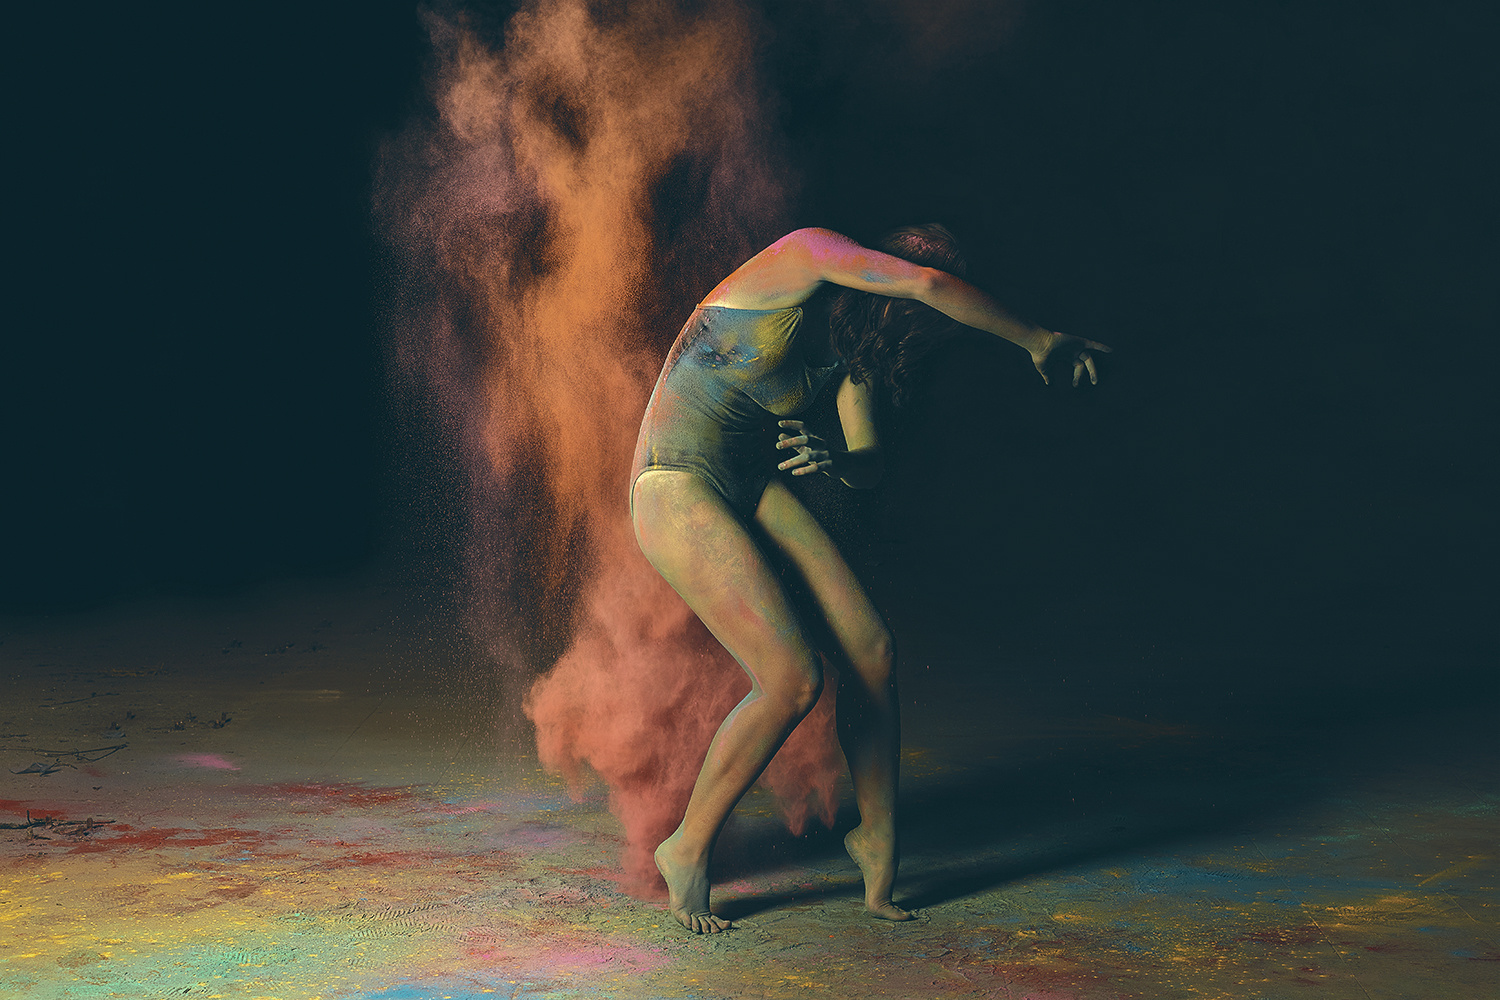 Soul - The Dancer Project by Adolfo Usier